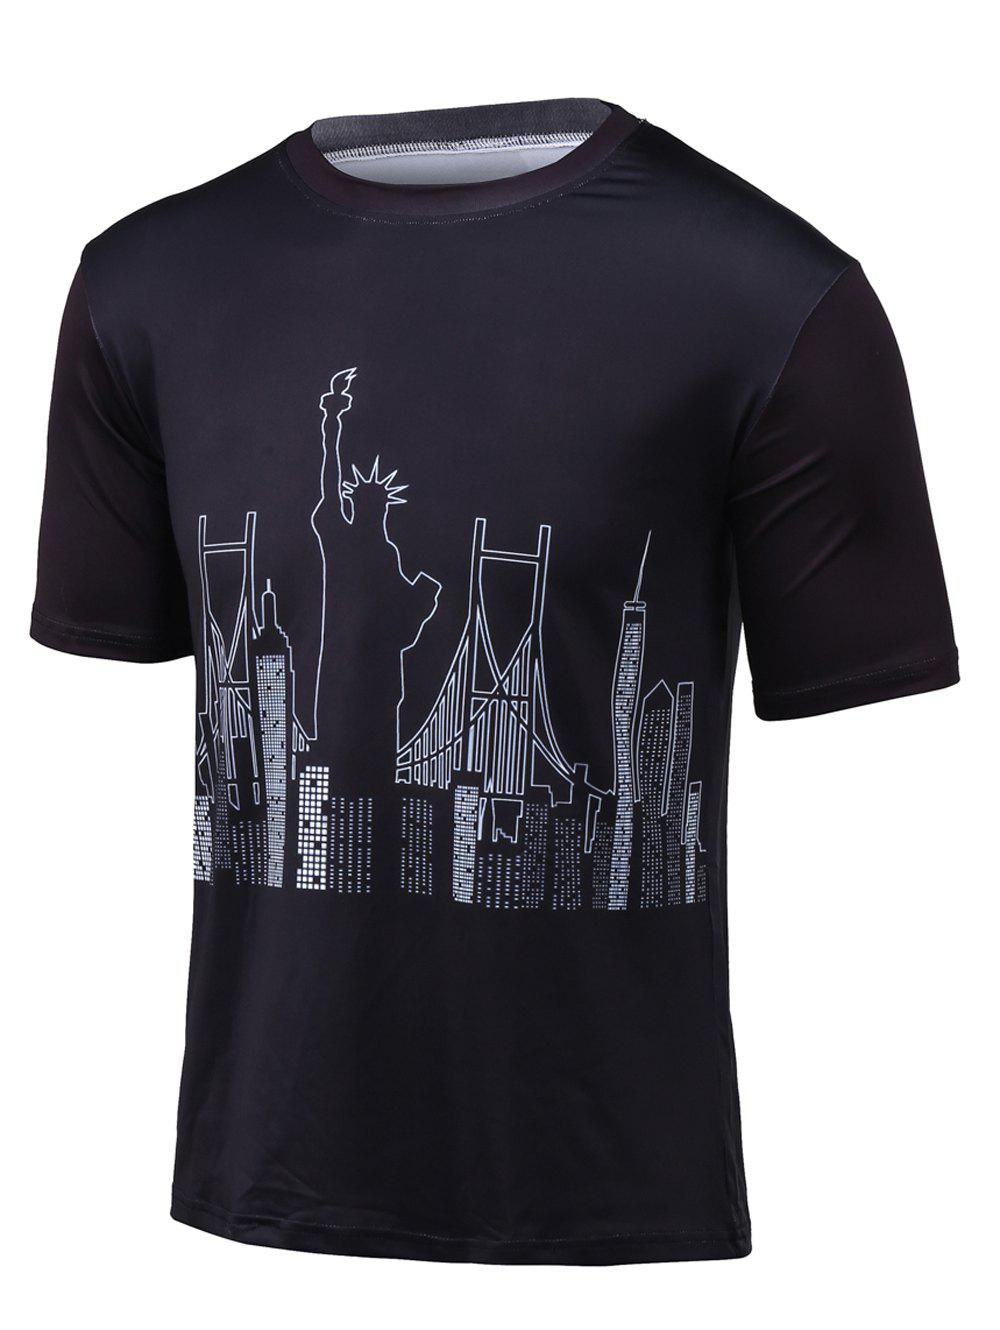 Statue of Liberty Print Round Neck Short Sleeve T-Shirt - BLACK 3XL